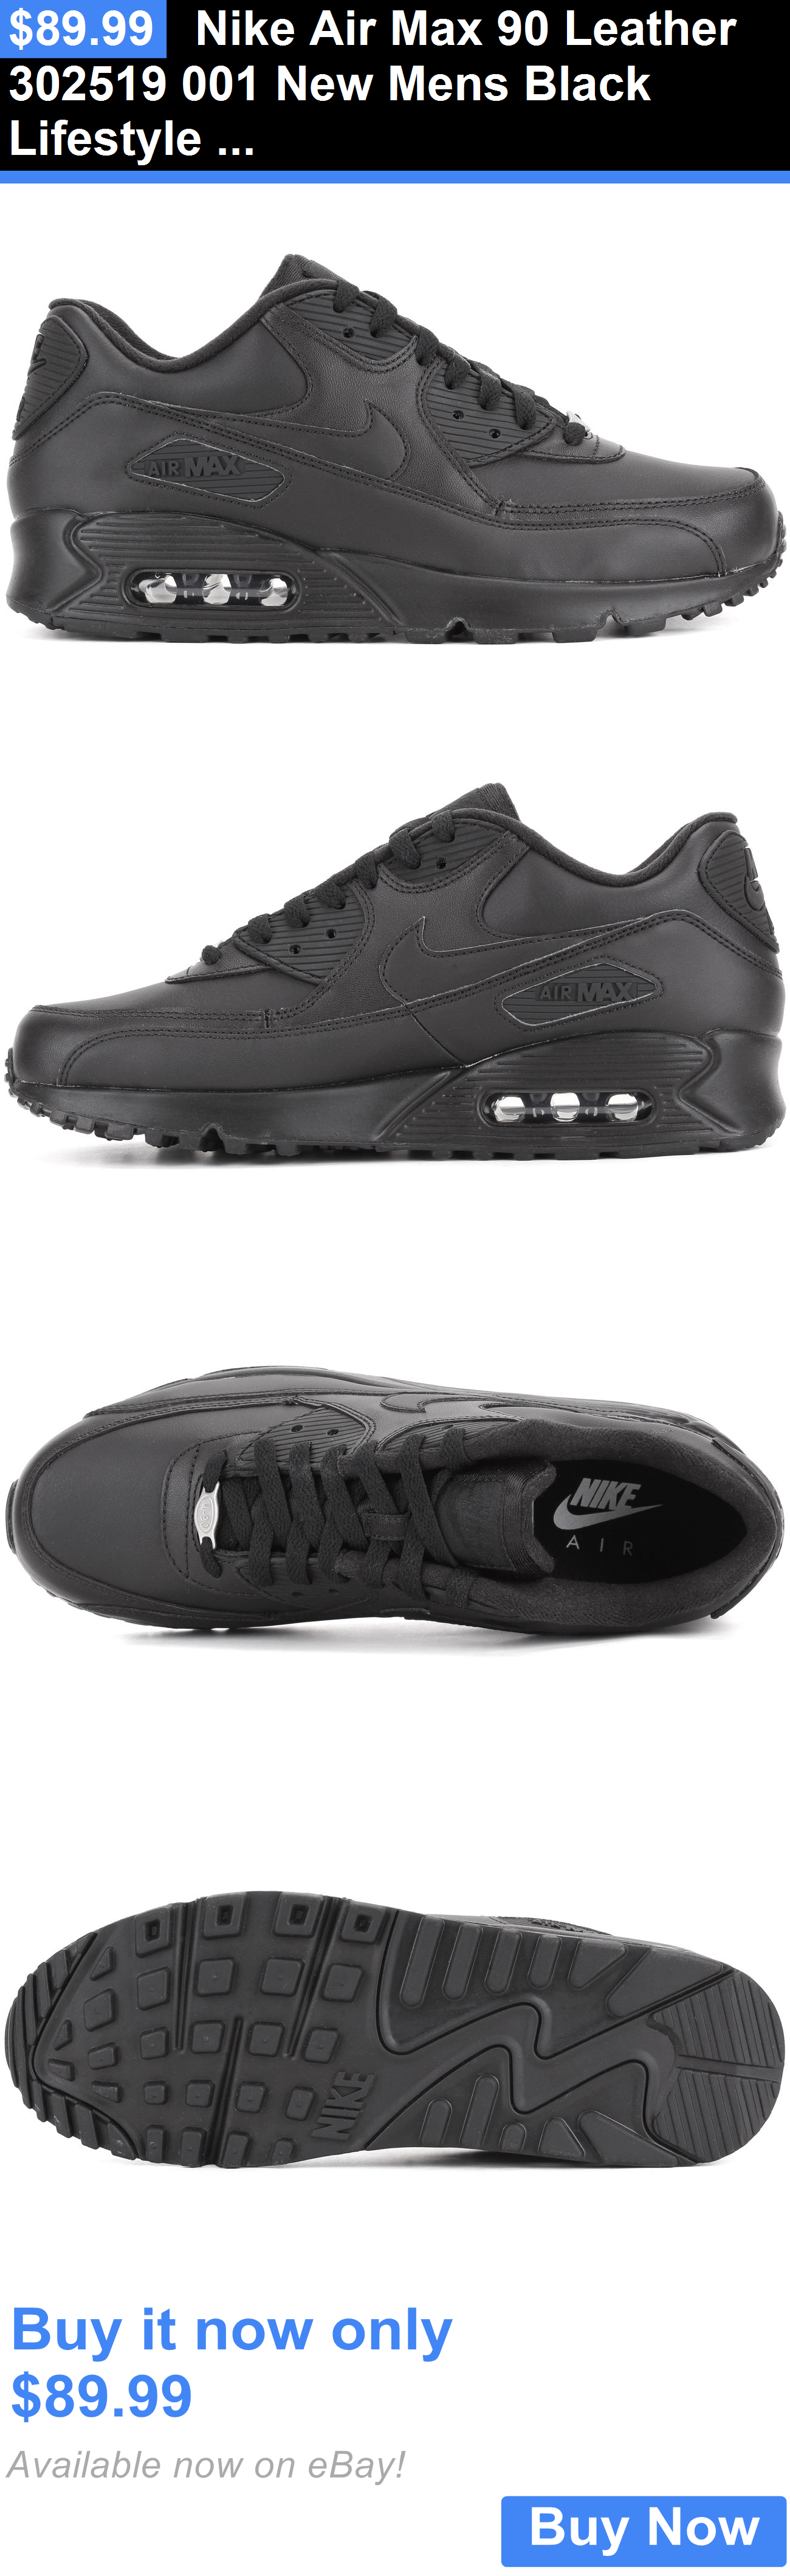 best loved fe6e5 2283a Men Shoes  Nike Air Max 90 Leather 302519 001 New Mens Black Lifestyle  Running Casual